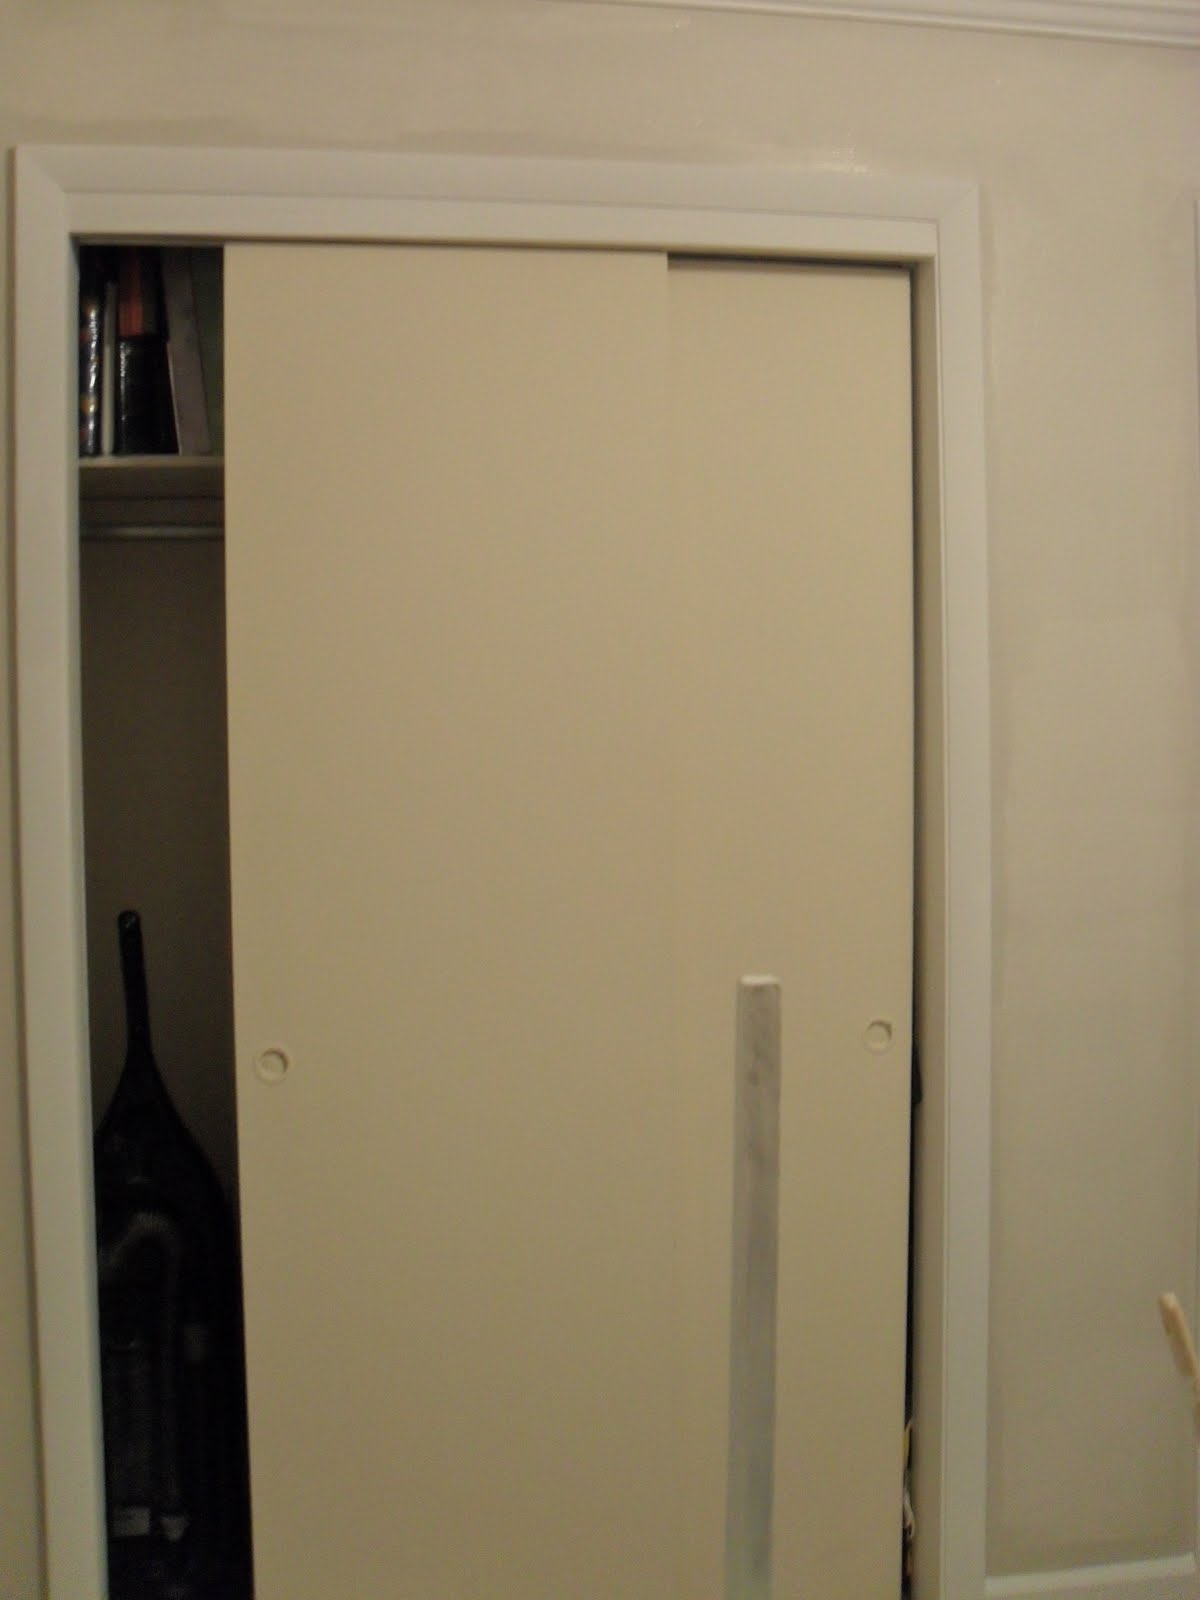 The Remodeled Life: Closet Doors and Magnetic Paint